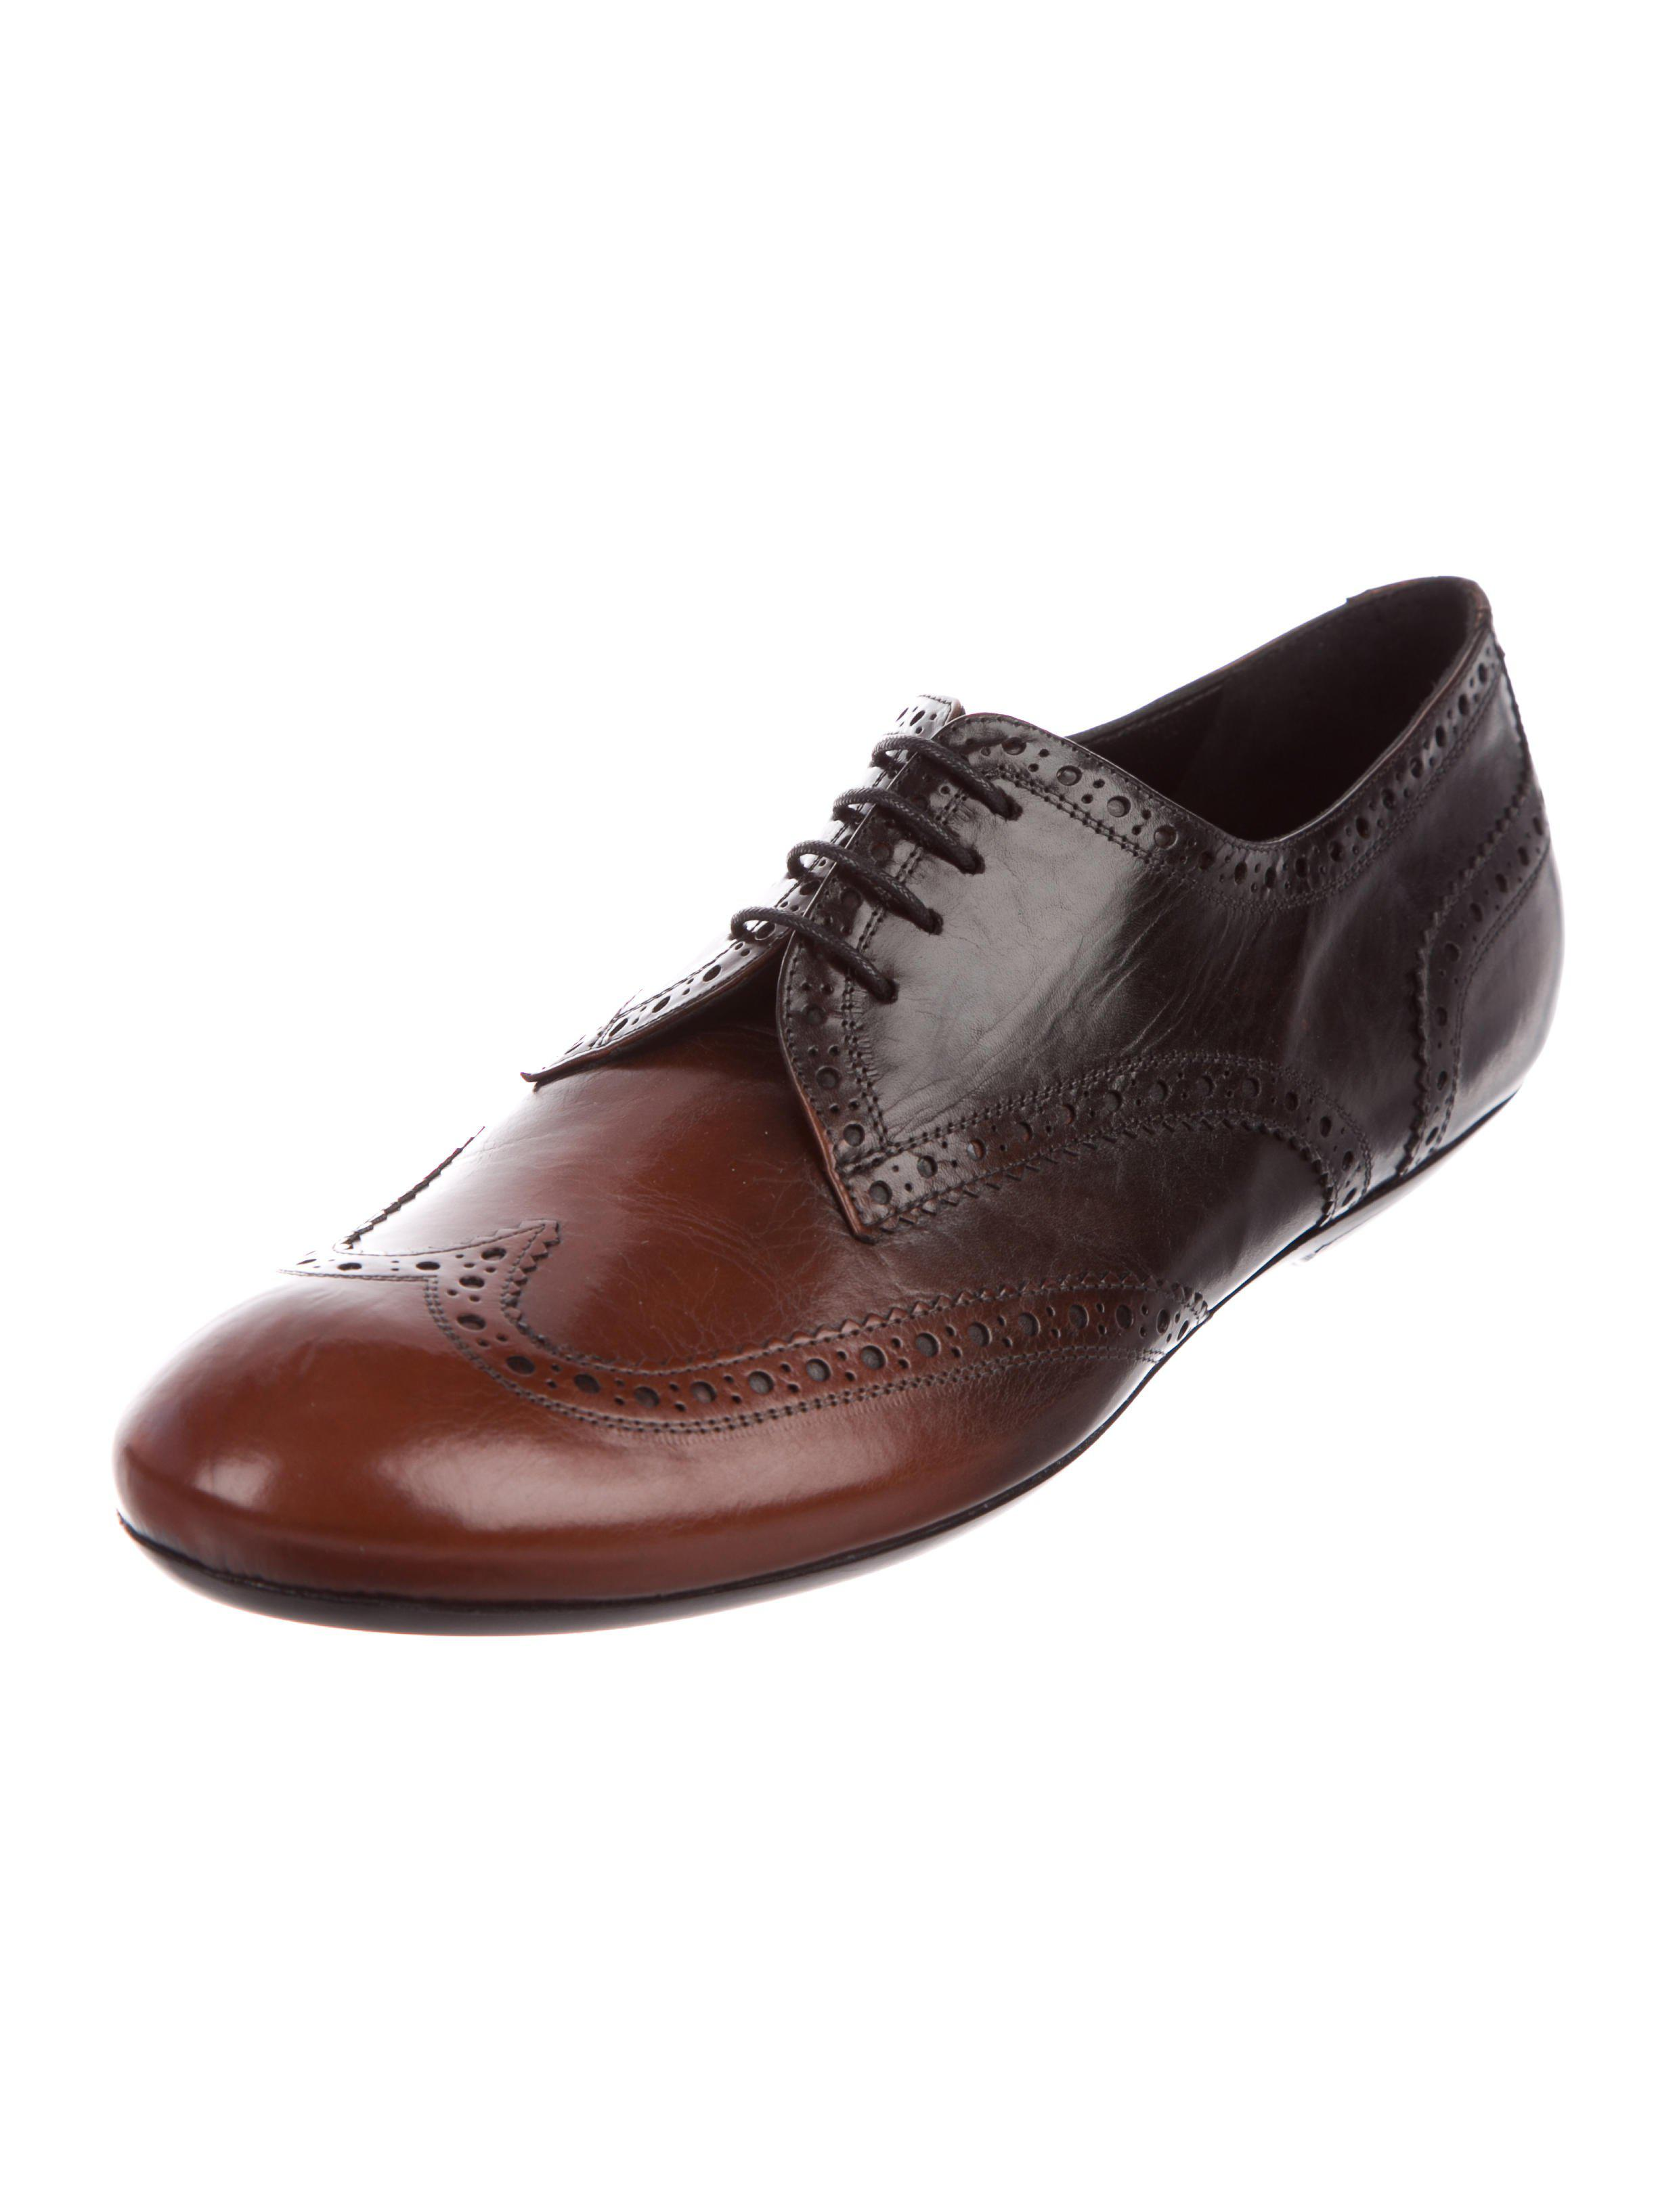 205bf24ad964 Lyst - Dries Van Noten Leather Brogue Oxfords in Brown for Men